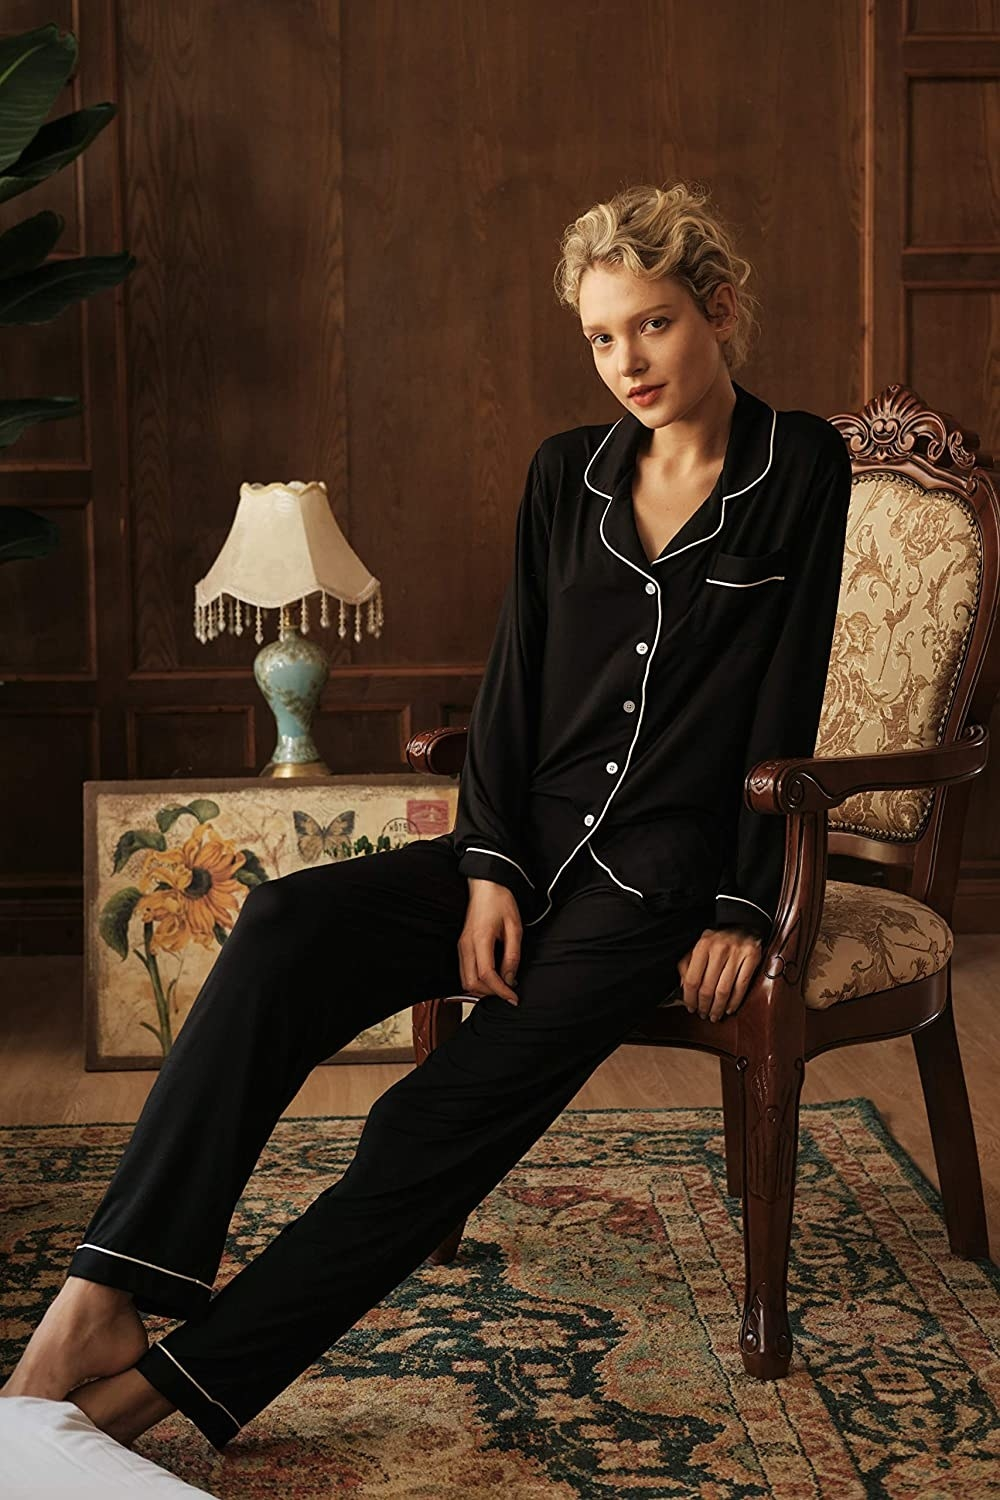 A model wearing the pajamas in black with white piping